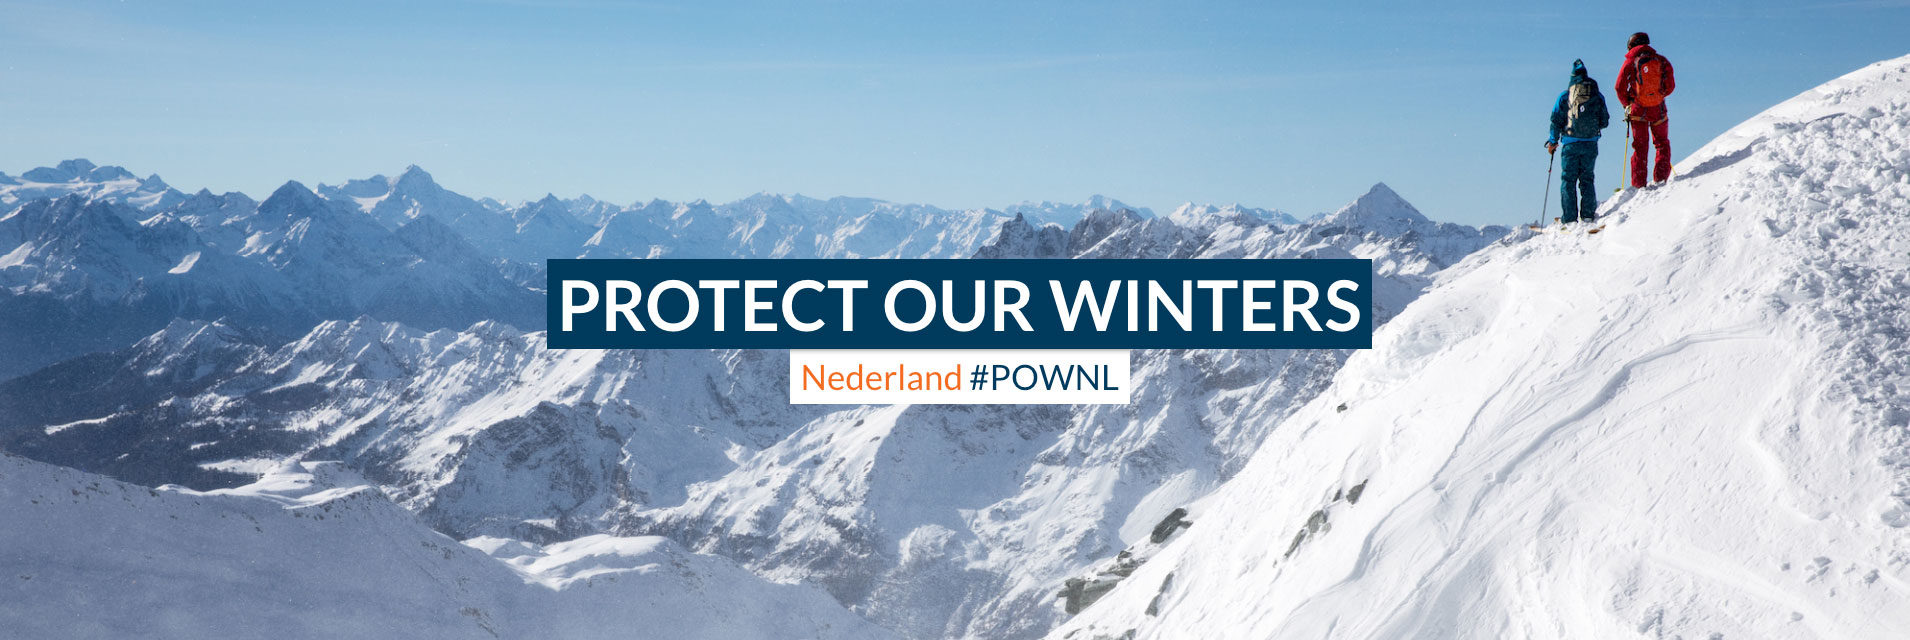 Protect Our Winters Nederland